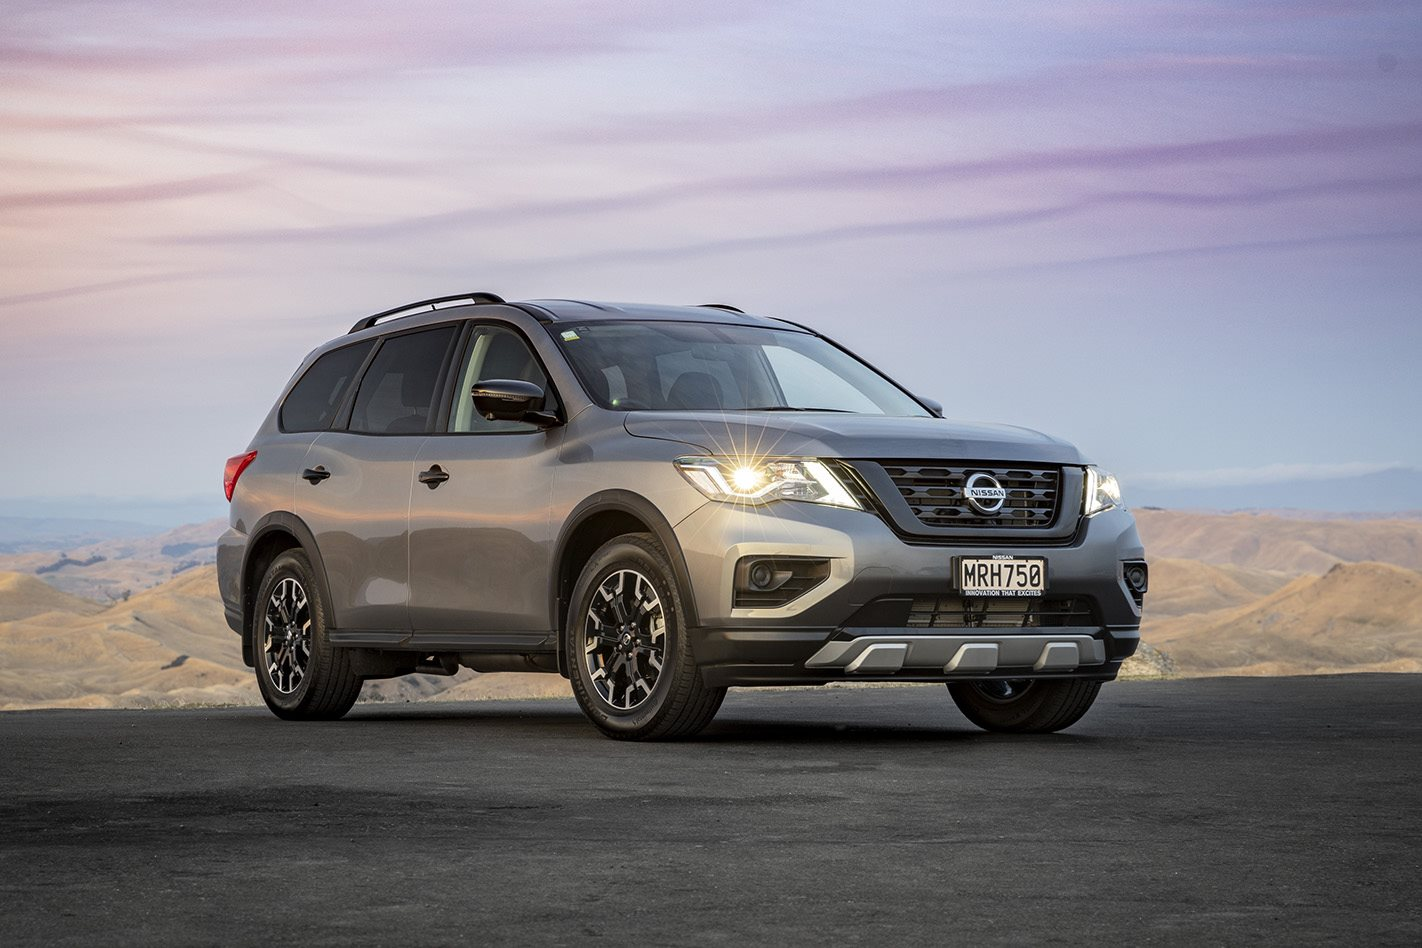 2020 Nissan Pathfinder Hybrid Prices